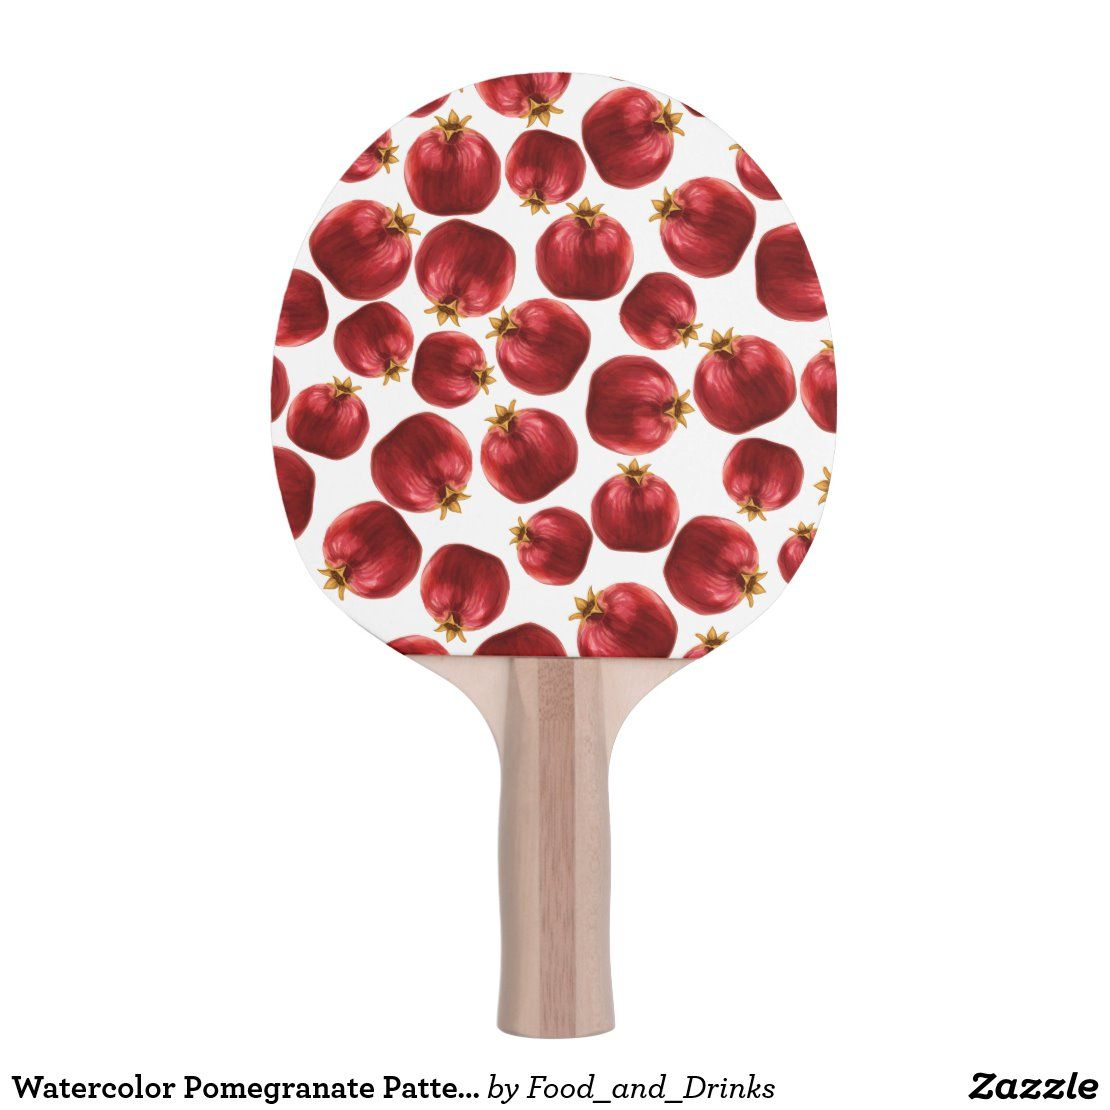 If you are a pomegranate and fresh fruit fan, this watercolor brand new design is perfect for you. Who can say no to a delicious fruit for both yourself and your loved ones? #zazzle #pomegranate #watercolor #red #fruit #food  #artprint #gifts #gift #giftideas #design #unique #custom #sports #games #hobby #yoga #cornhole #baseball #dartboard #puzzle #playingcard #golf #paddle #dart #skateboard #beerpong #poker #frisbee #guitar